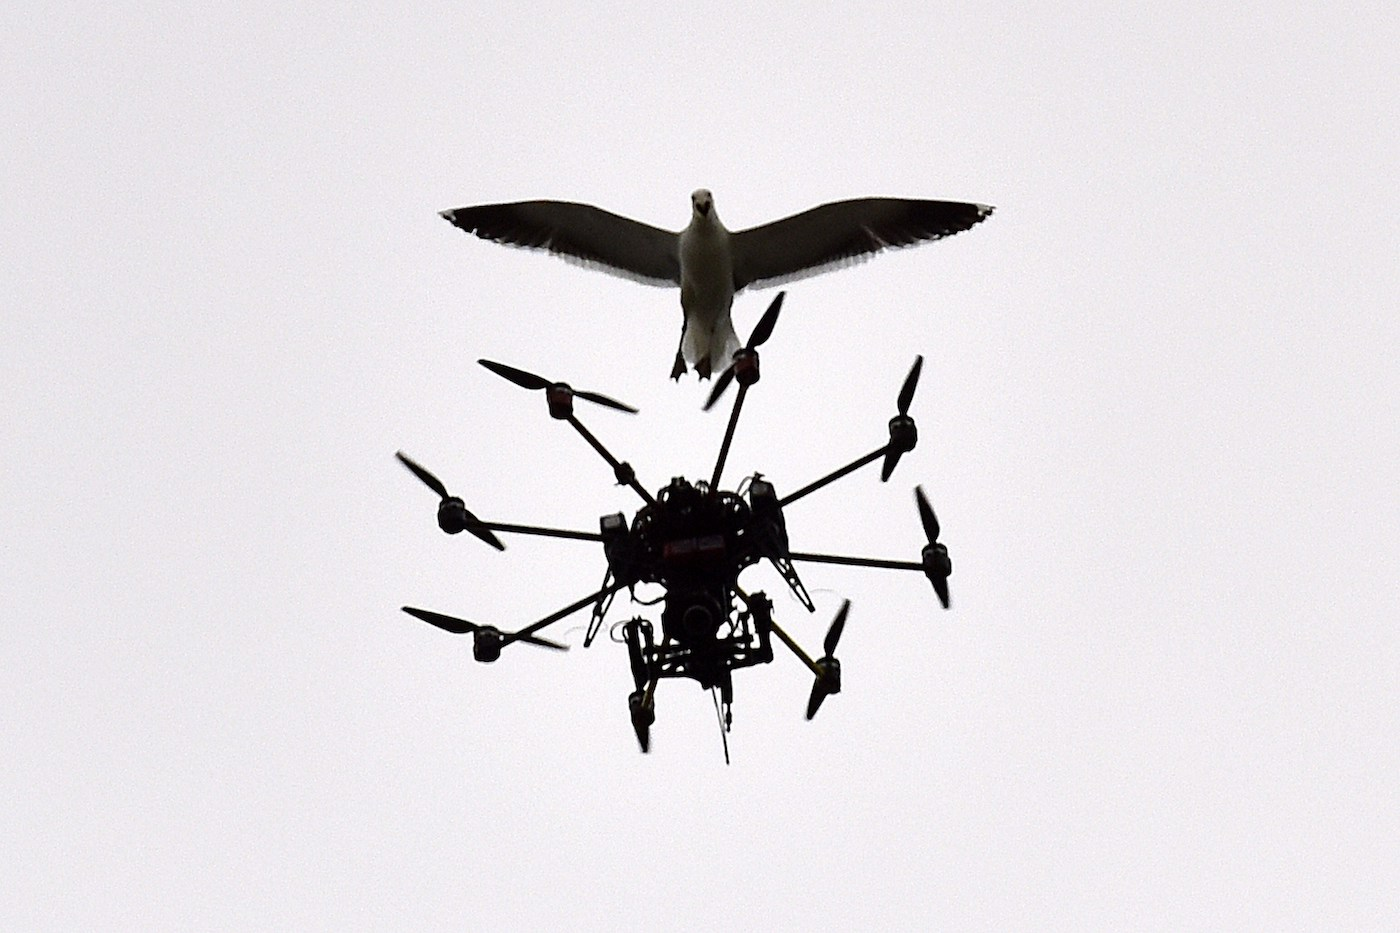 Playing in a stadium near you: the drone wars, starring Steven Seagull